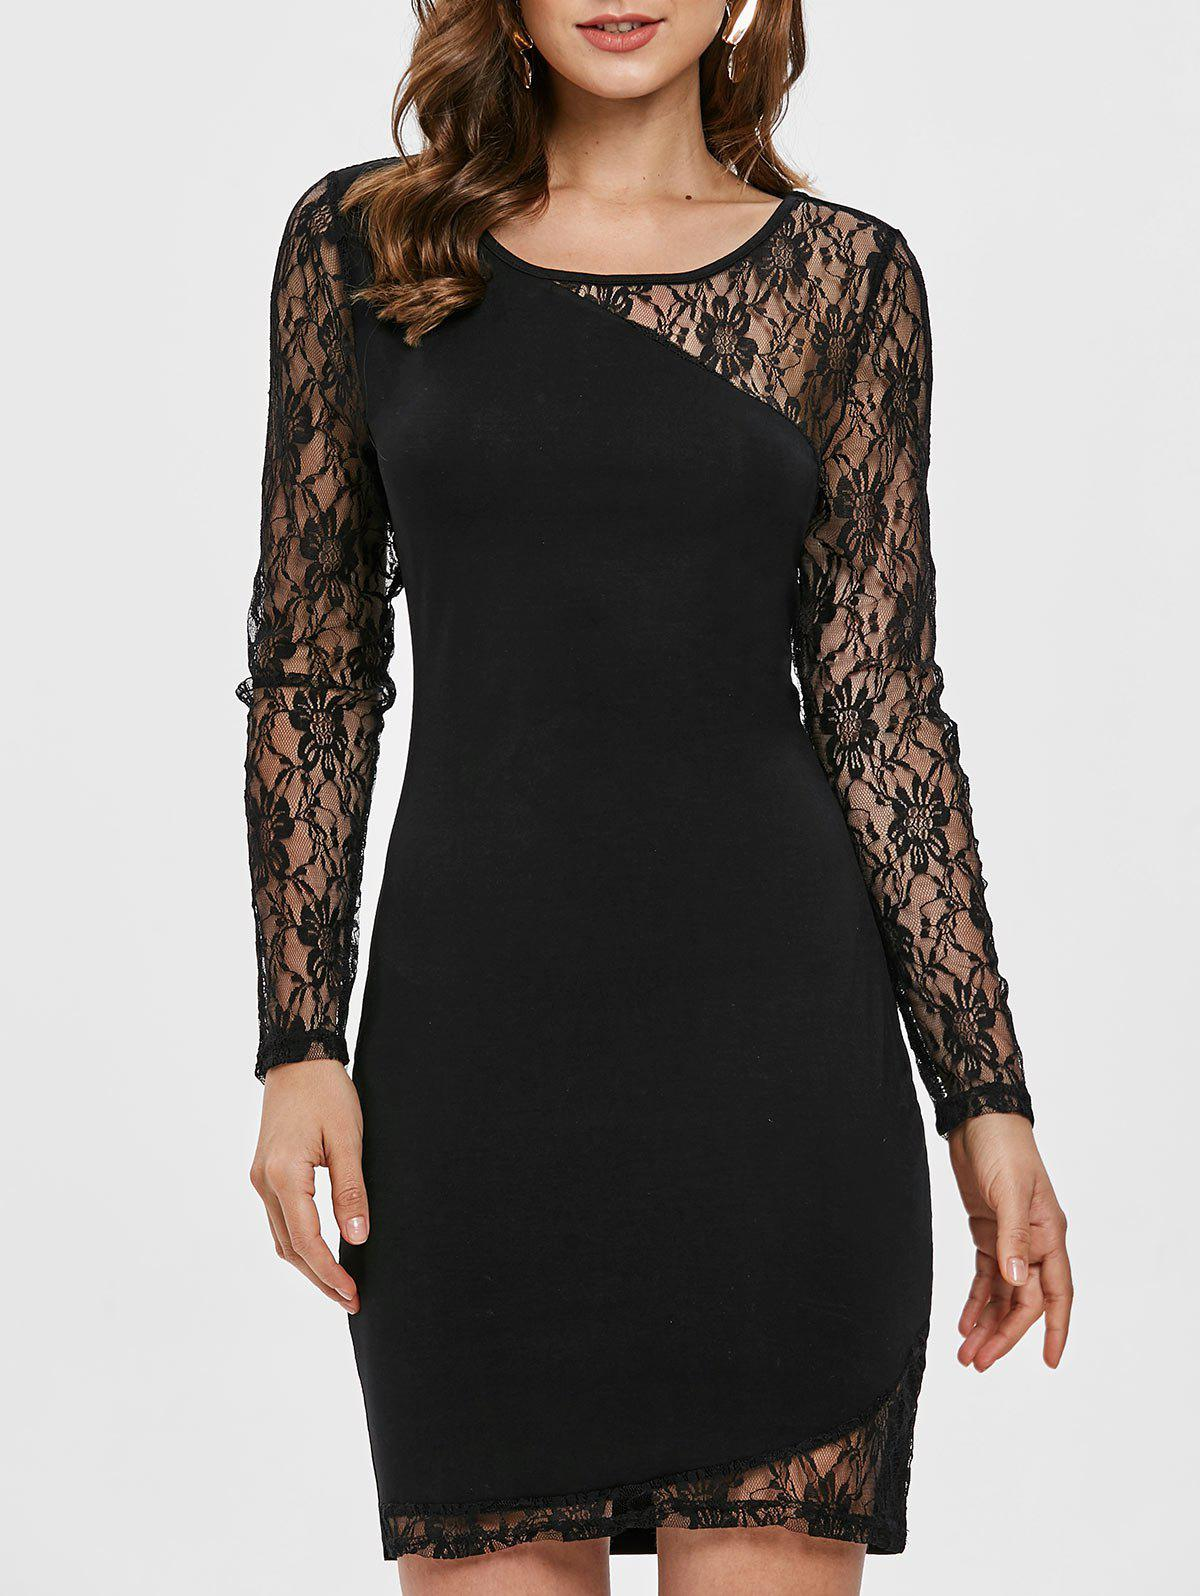 Chic Floral Lace Panel Bodycon Dress